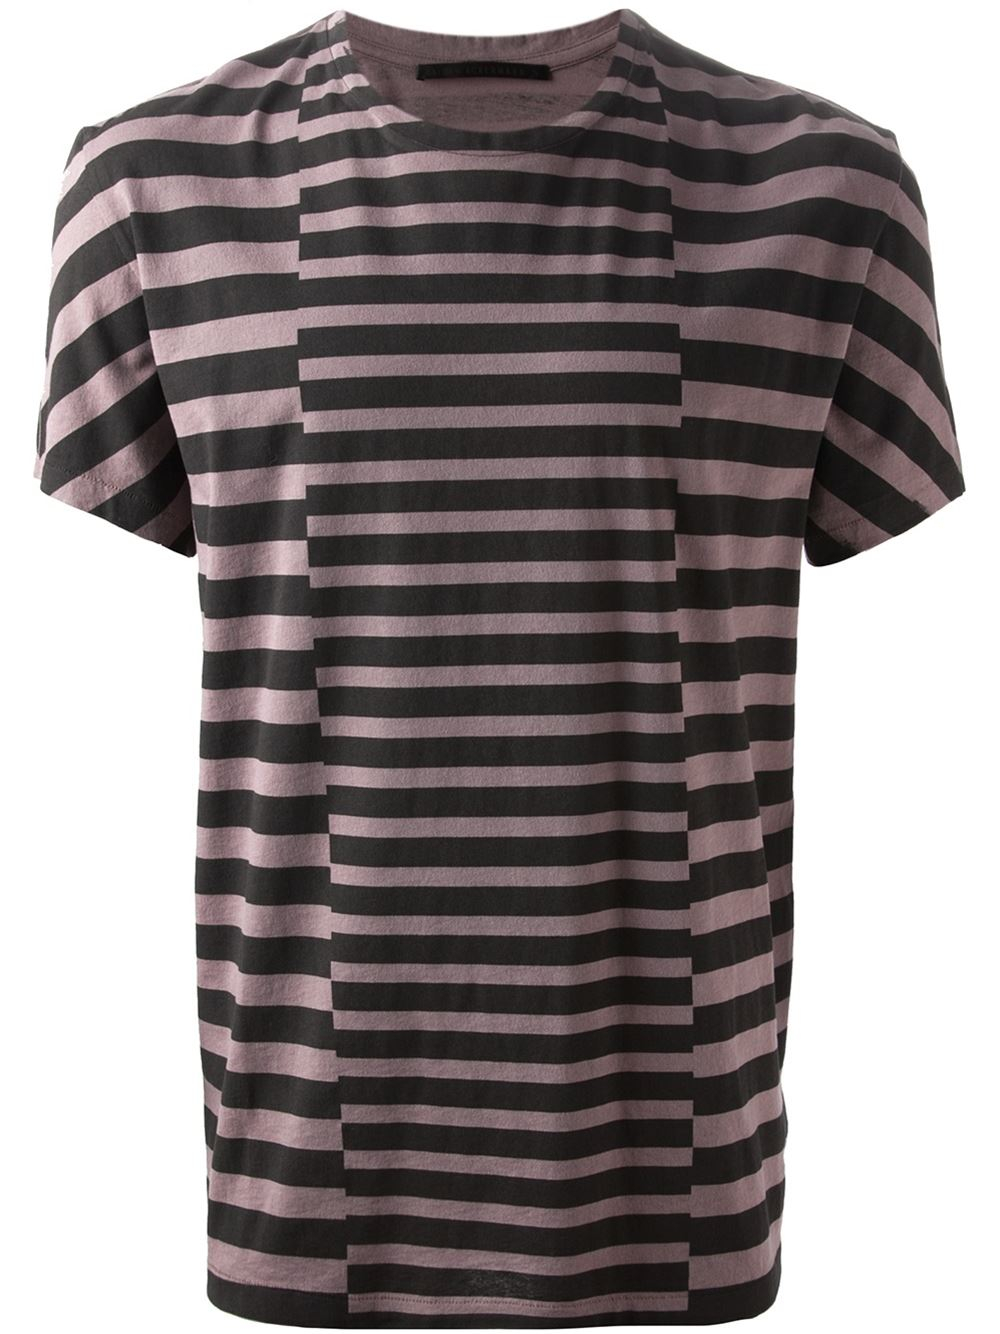 Haider ackermann striped t shirt in pink for men pink for Purple and black striped t shirt